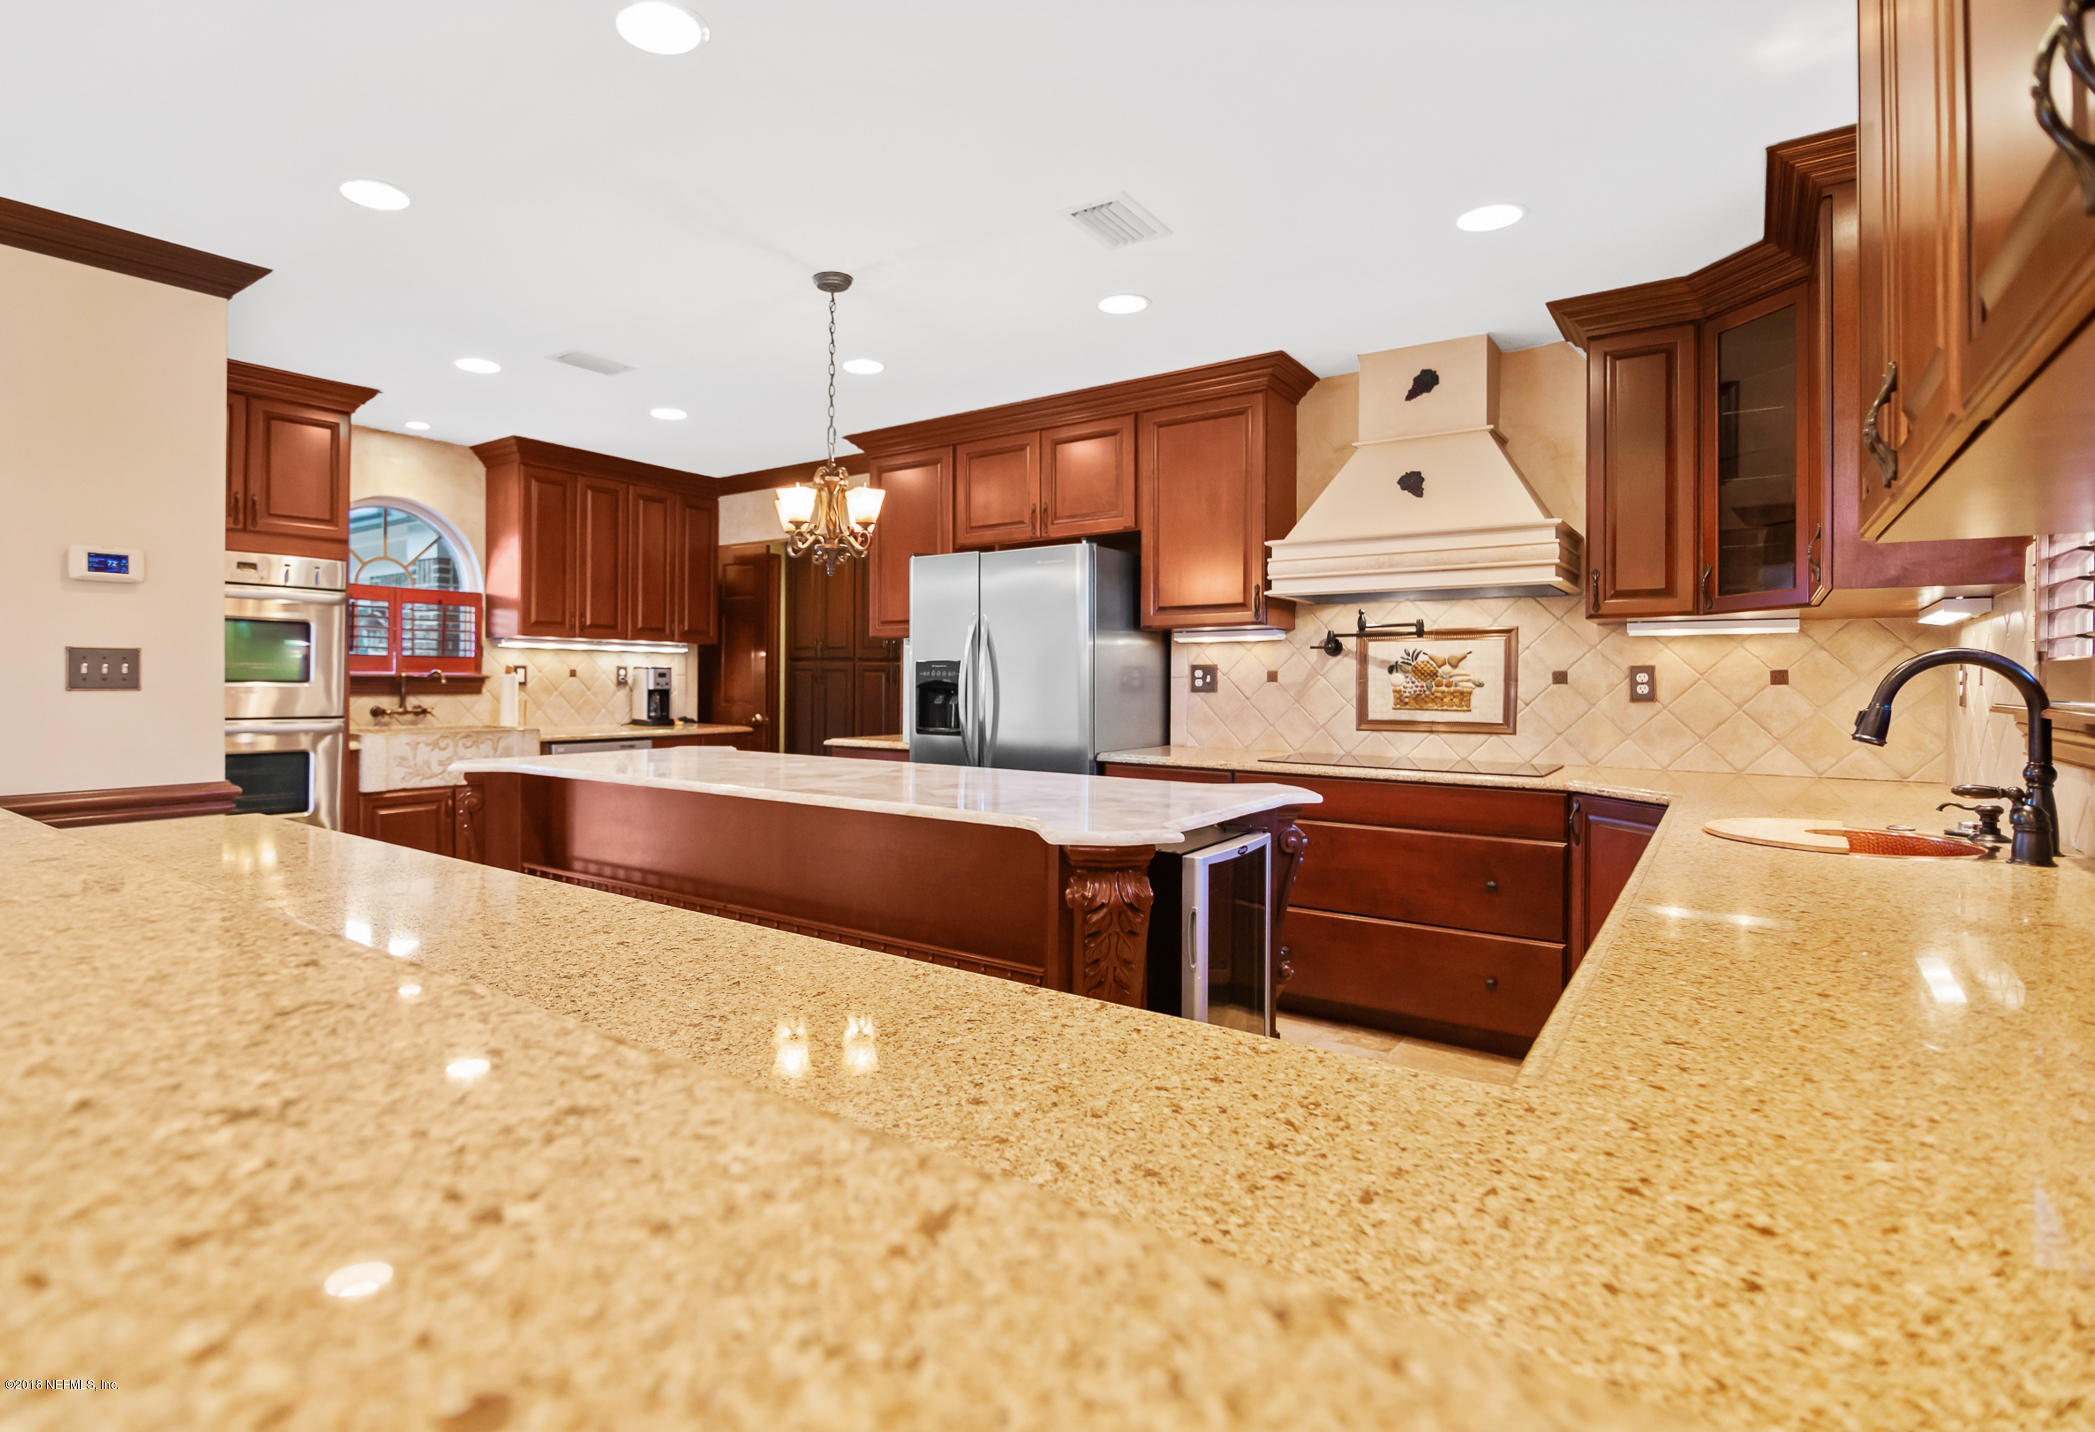 3357 ROYAL PALM, JACKSONVILLE, FLORIDA 32250, 3 Bedrooms Bedrooms, ,2 BathroomsBathrooms,Residential - single family,For sale,ROYAL PALM,954009